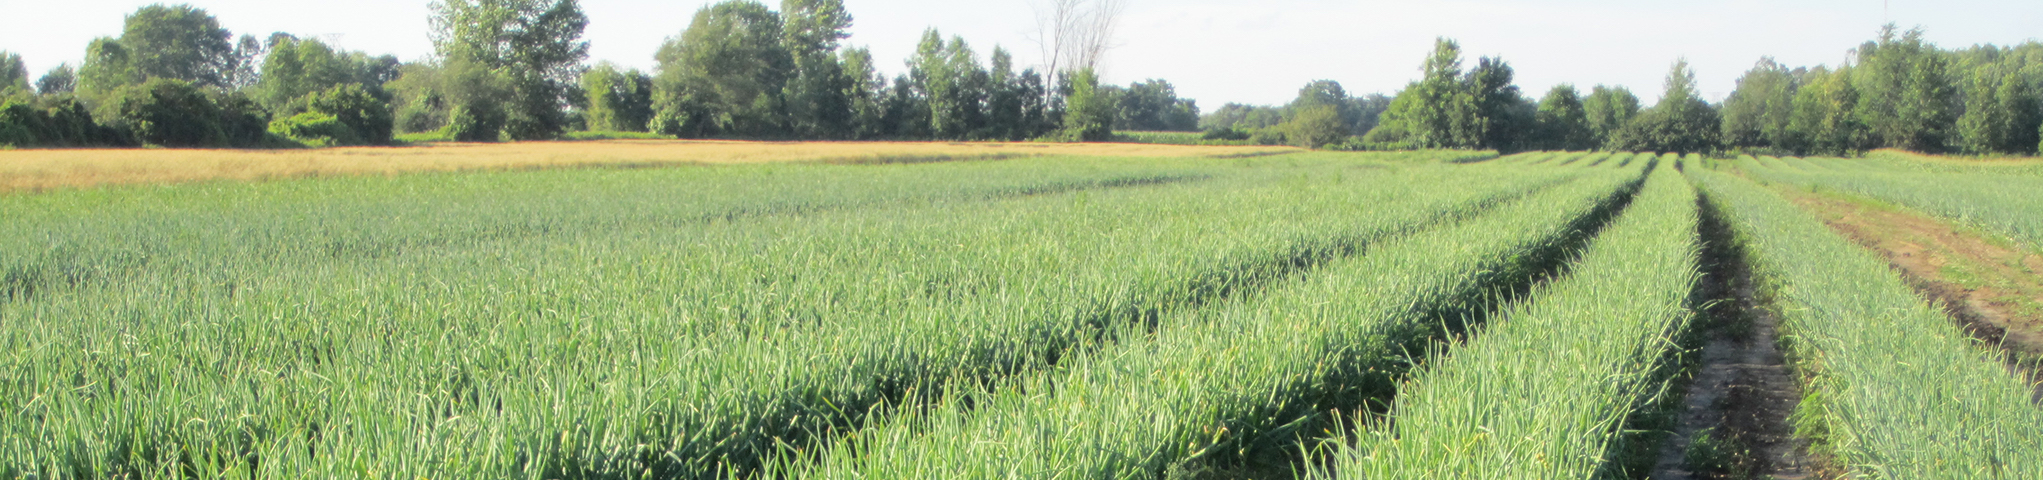 The Importance of Microbes in your Soil - Photo